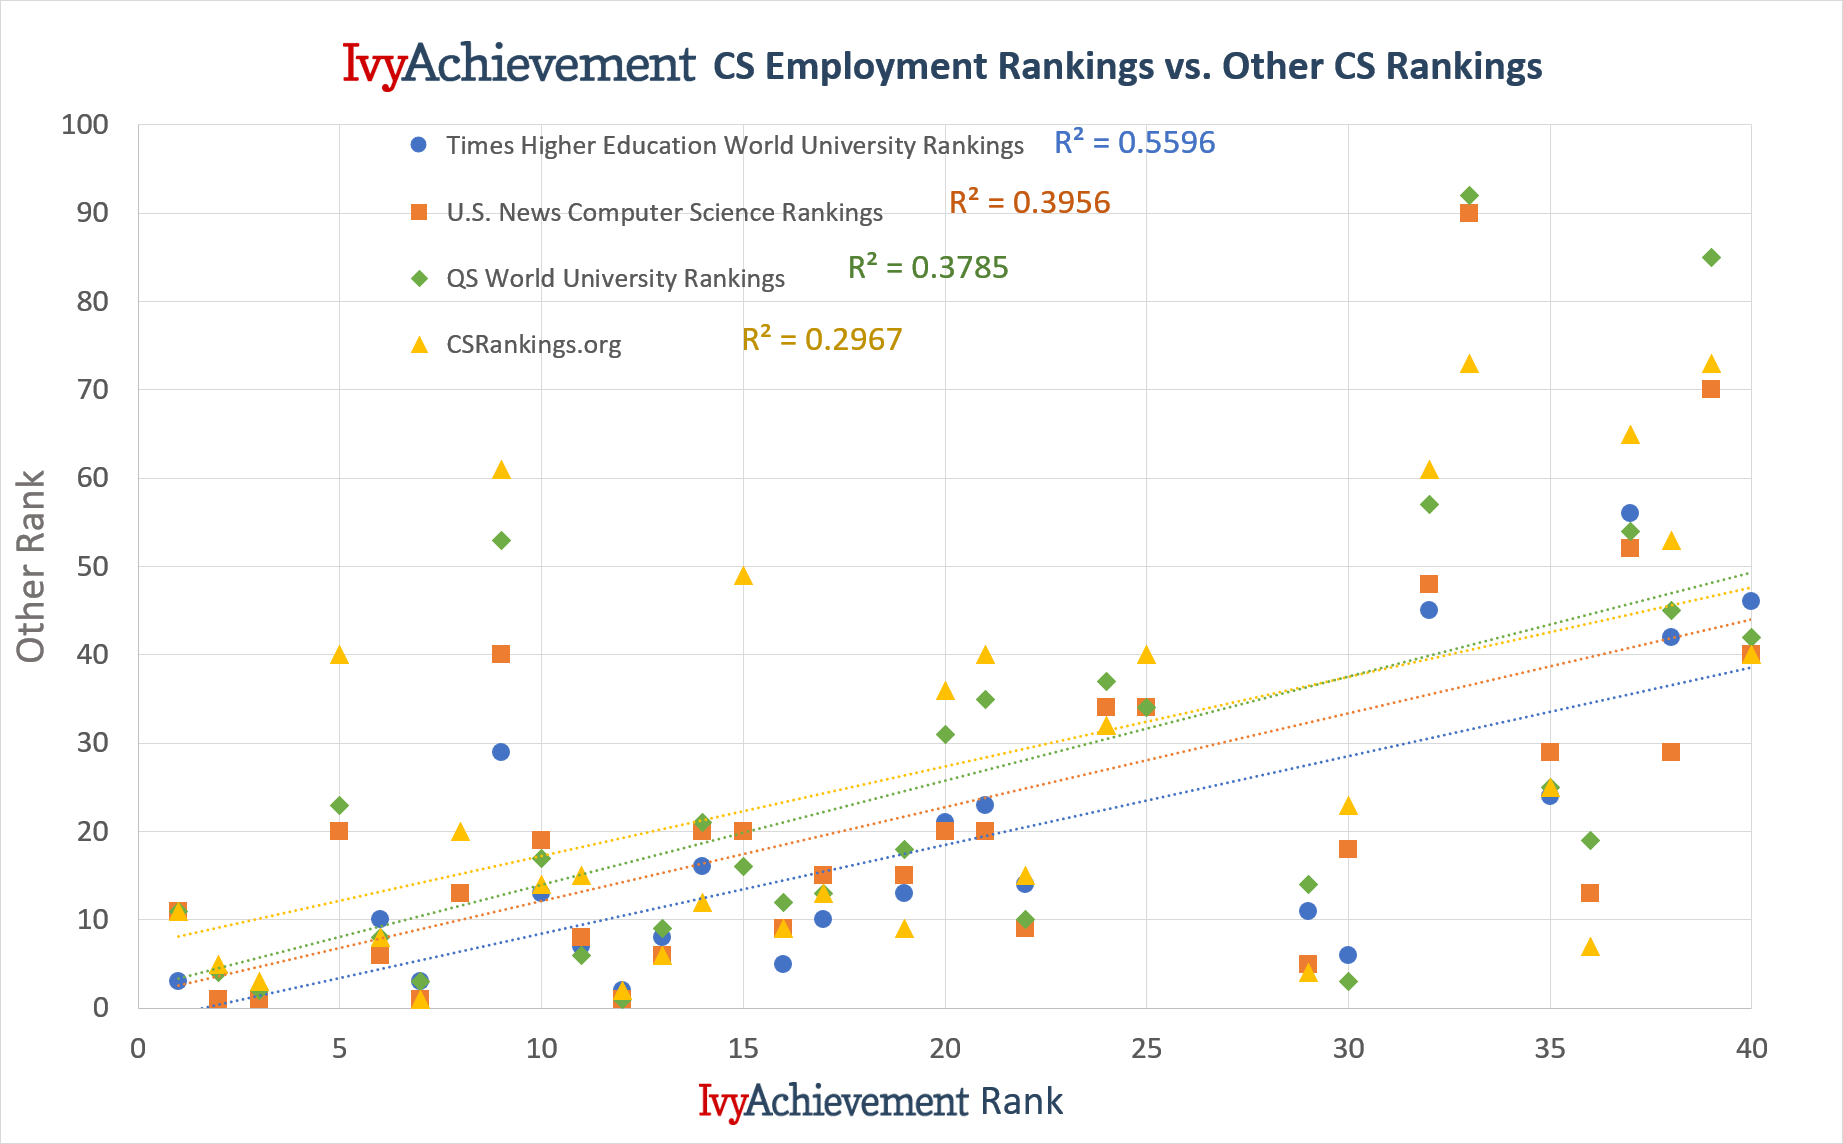 IvyAchievement computer science rankings vs other rankings